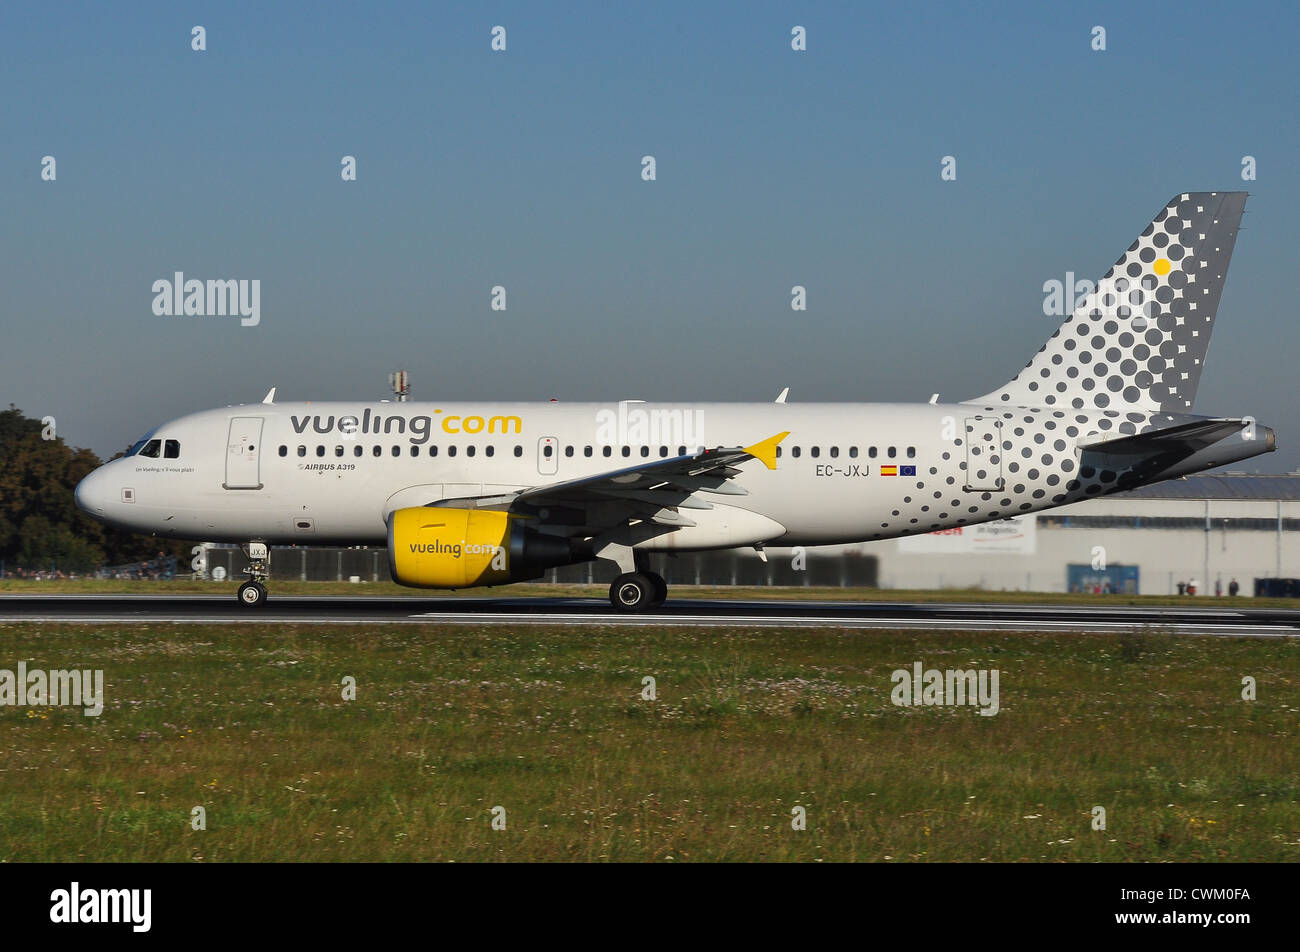 Airbus A319 Vueling Airlines - Stock Image